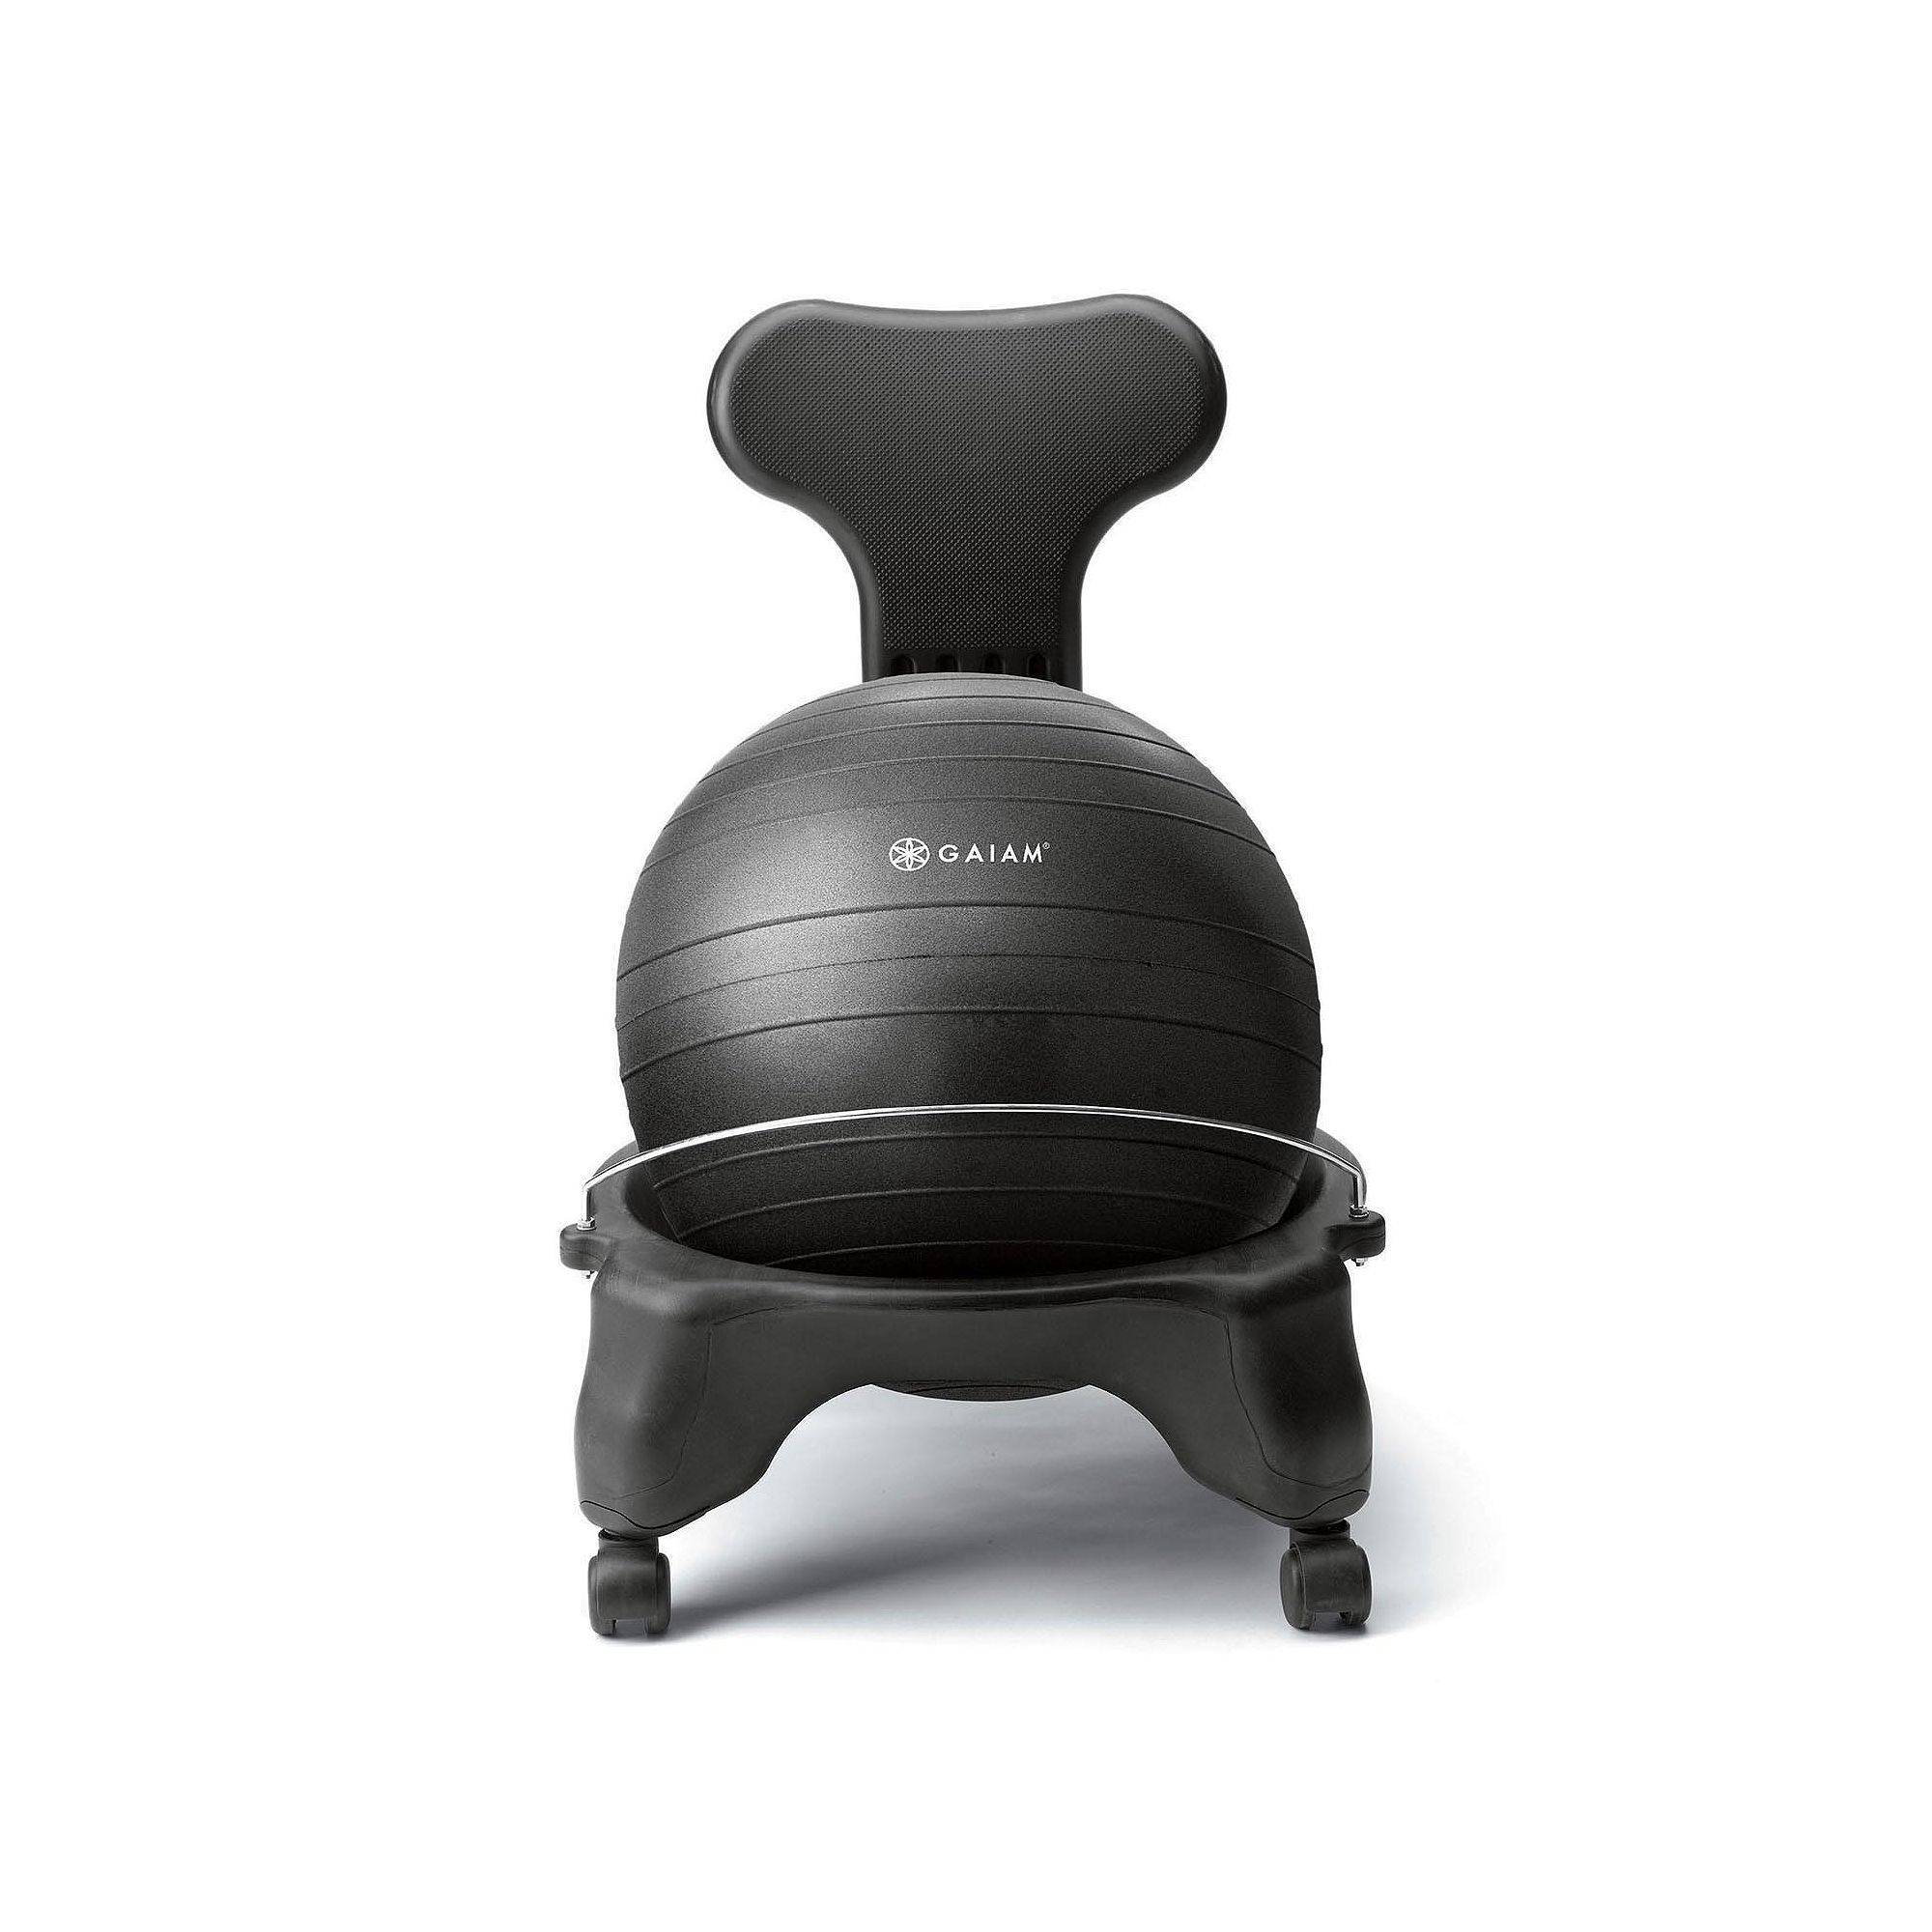 Gaiam Classic Balance Ball Chair Black